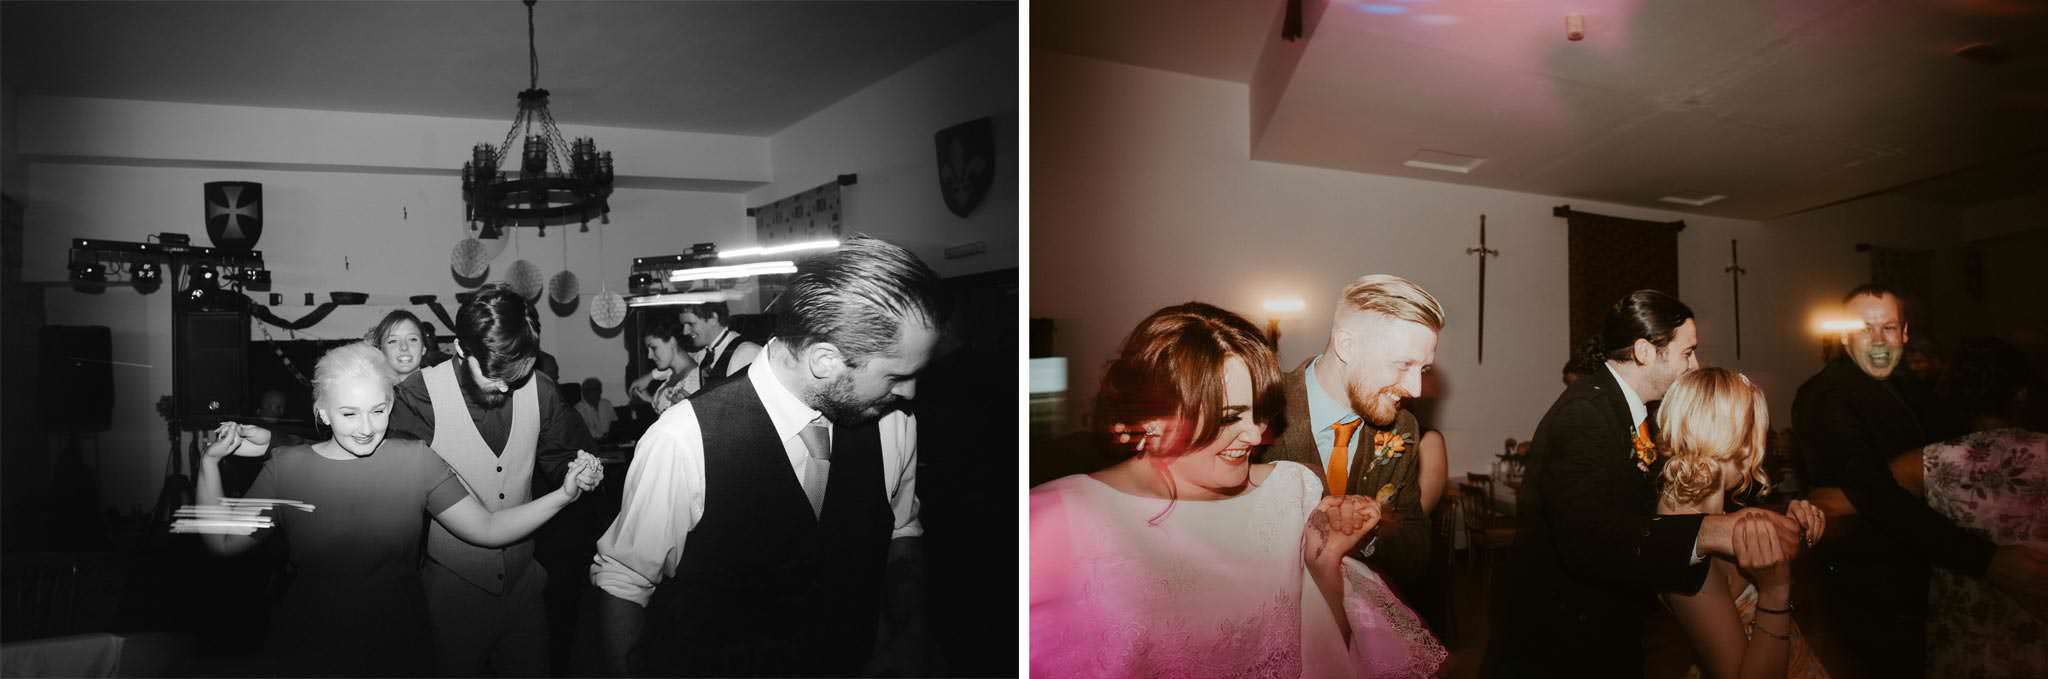 scottish-wedding-photographer-139